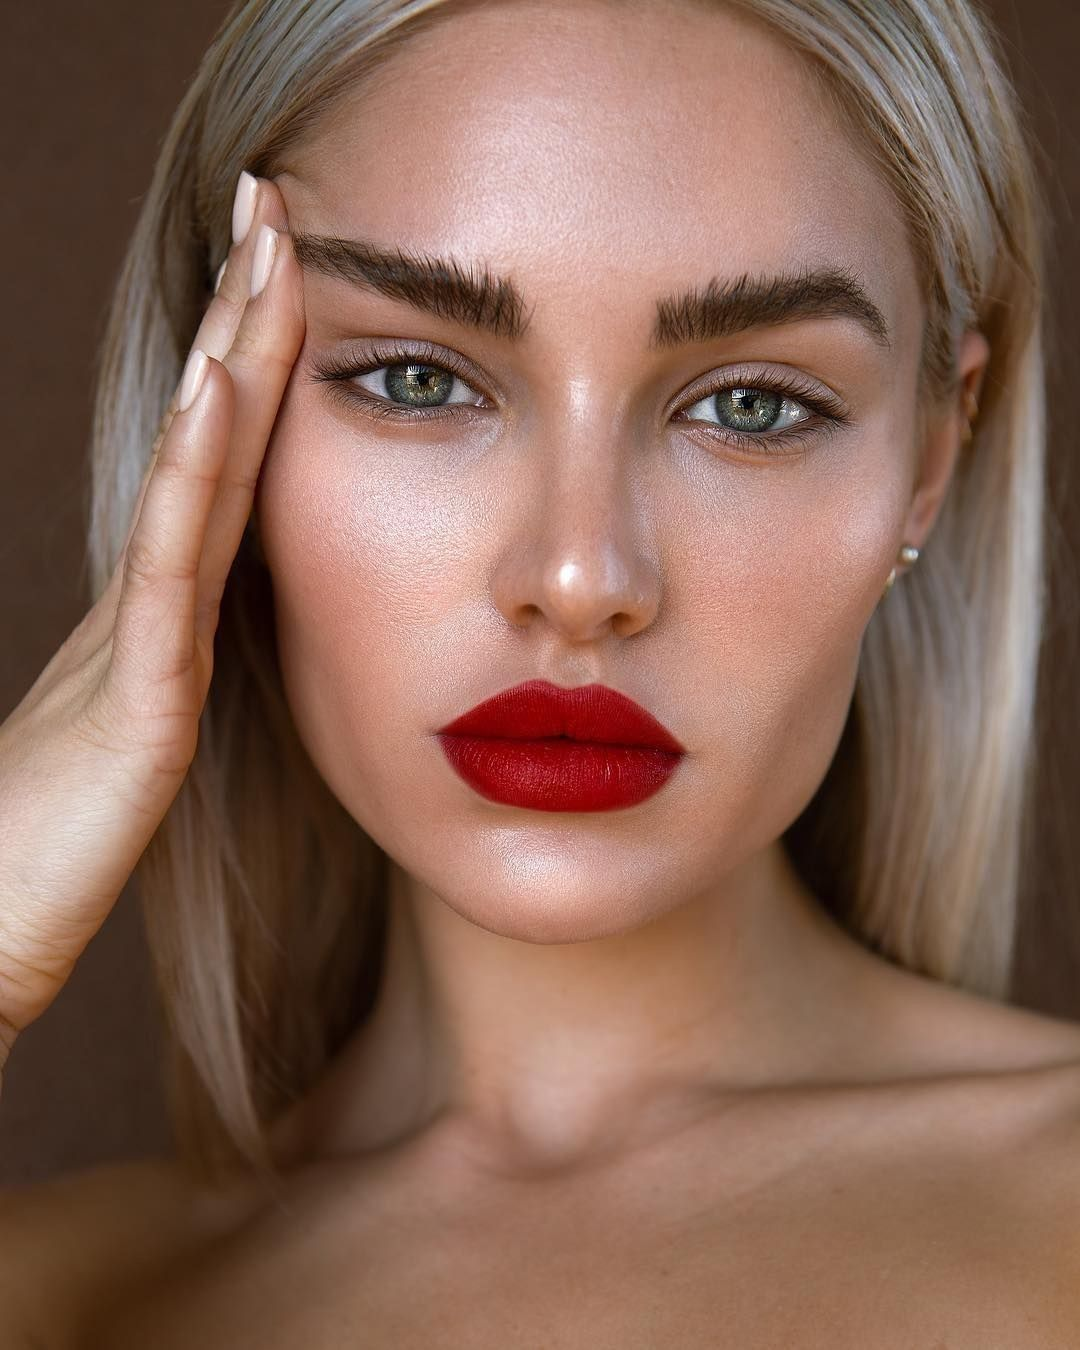 Portrait Beauty Lifest In 2020 Red Lipstick Looks Red Lip